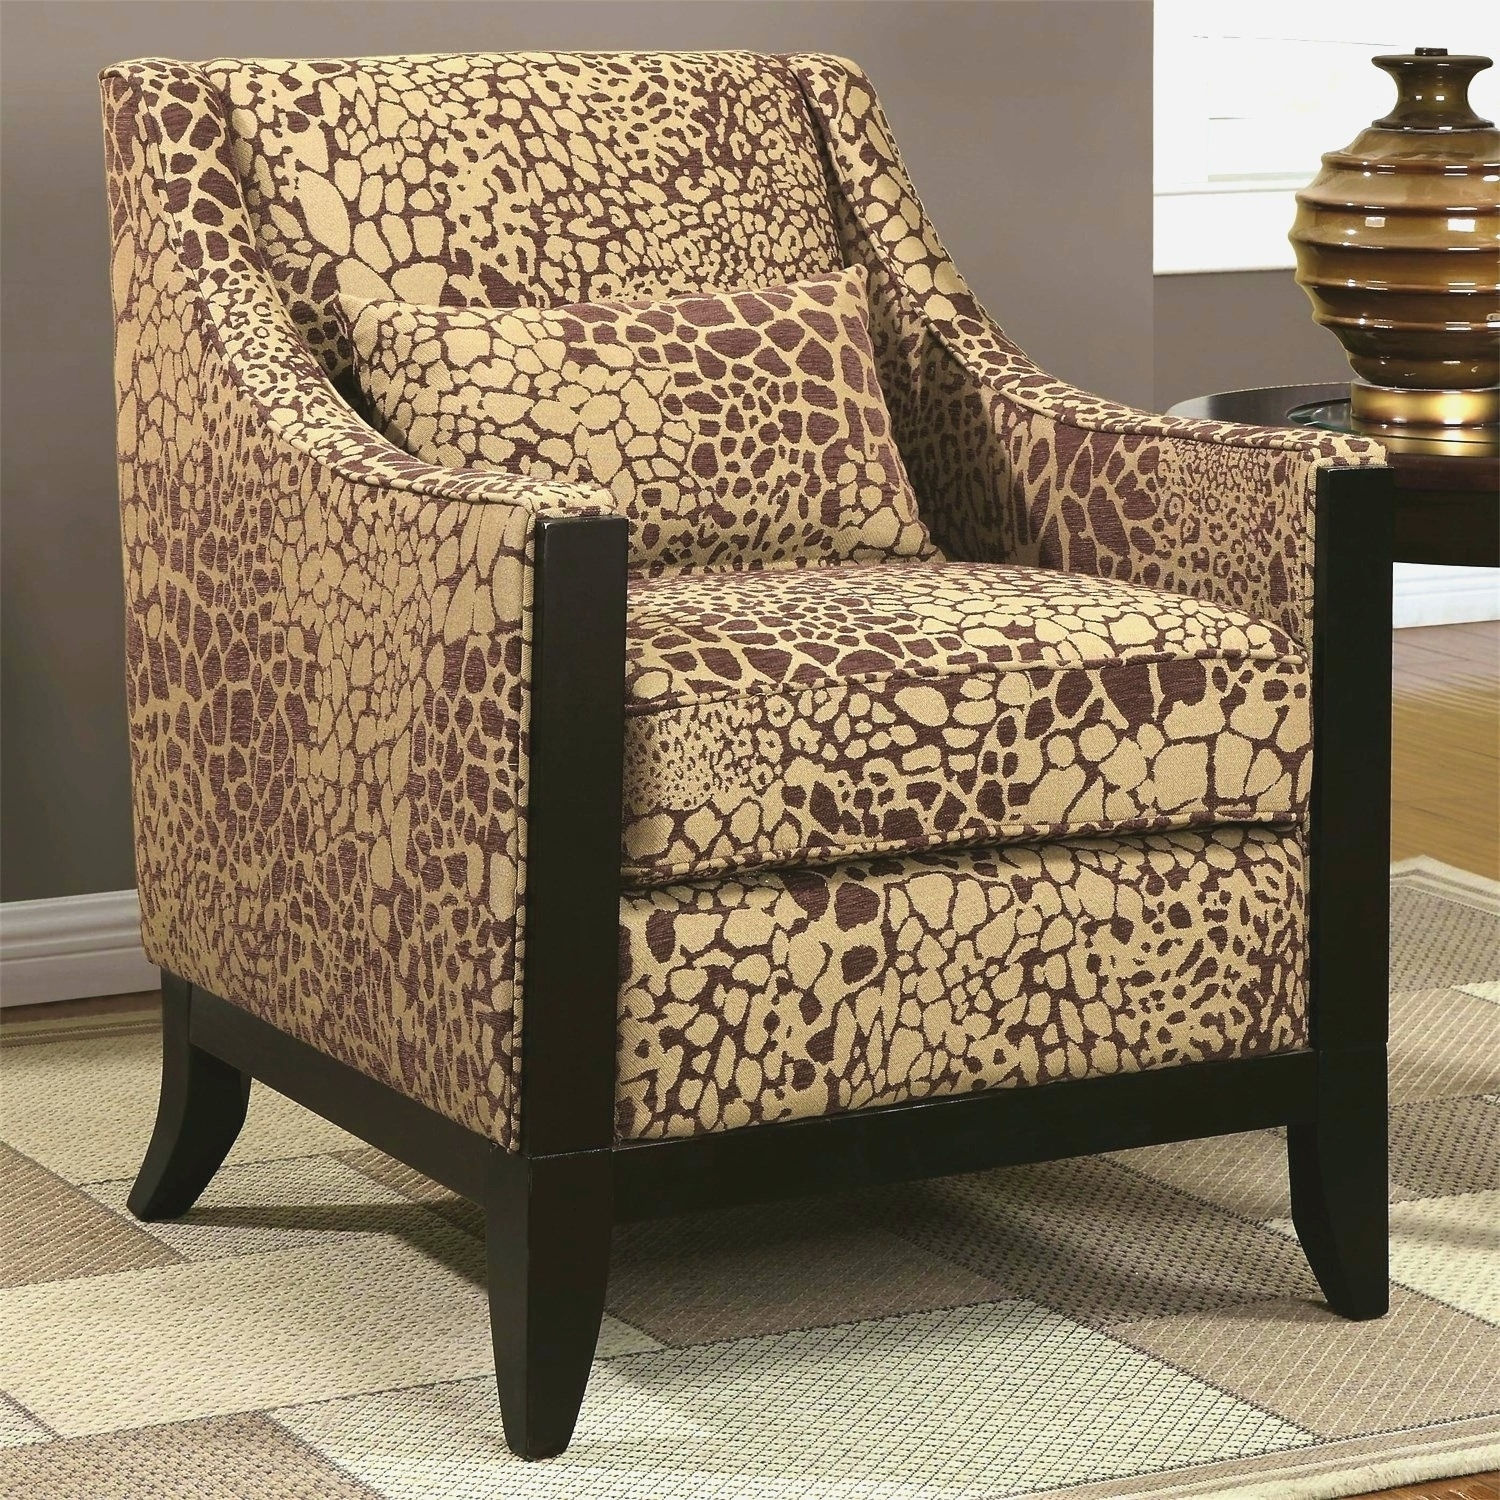 Leopard Print Chaise Lounge Chair • Lounge Chairs Ideas With Most Up To Date Zebra Print Chaise Lounge Chairs (View 4 of 15)